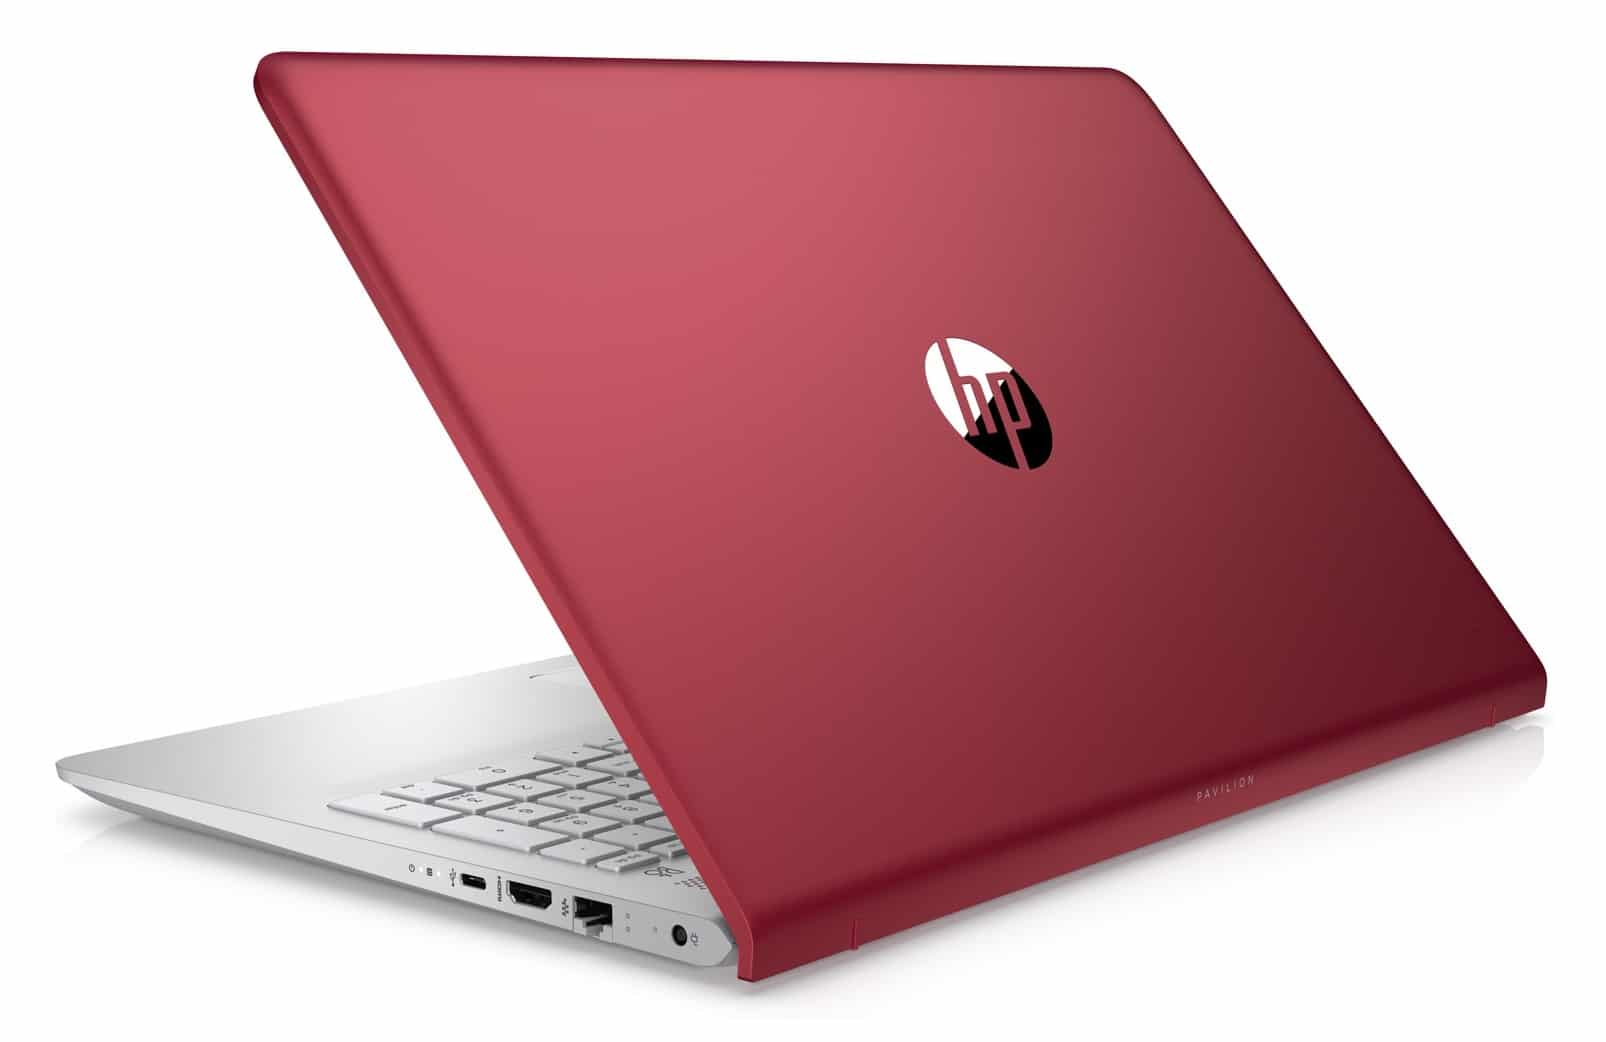 HP Pavilion 15-cc517nf, ultrabook 15 pouces Rouge Full HD i3 Kaby à 539€